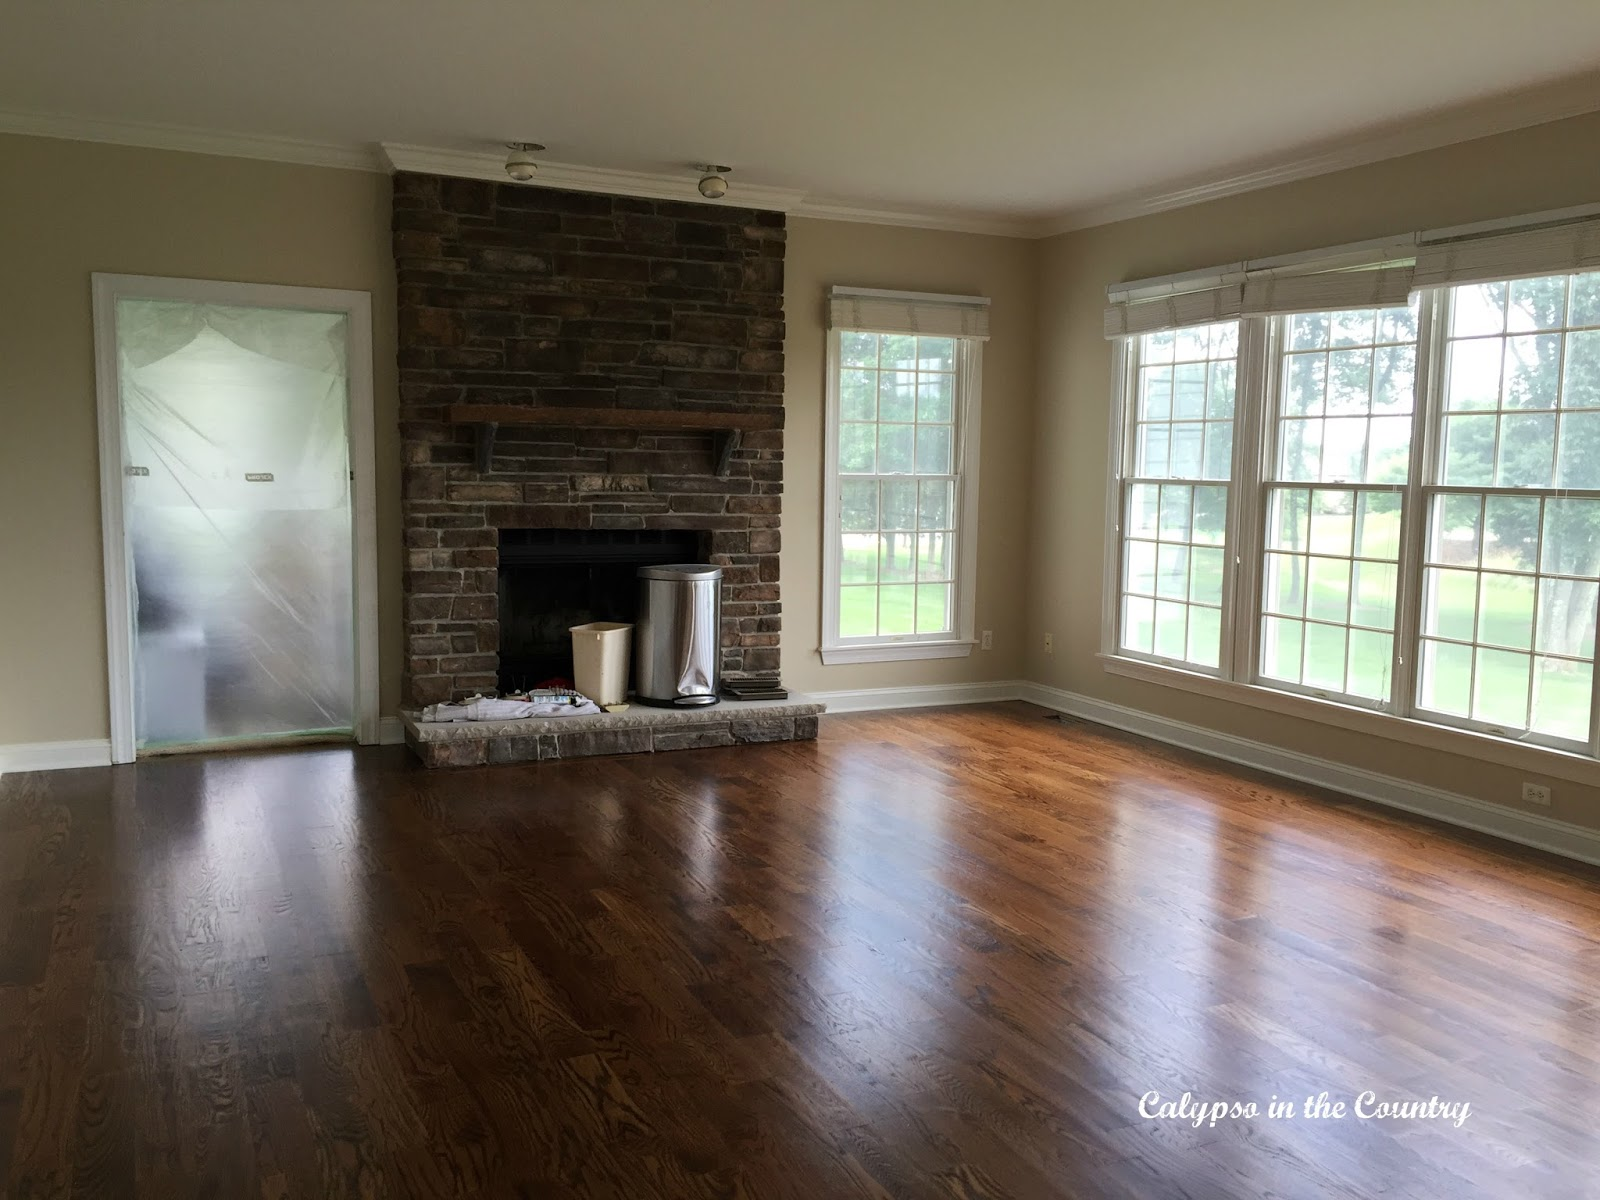 Red Oak Floors in Family Room - Minwax Provincial